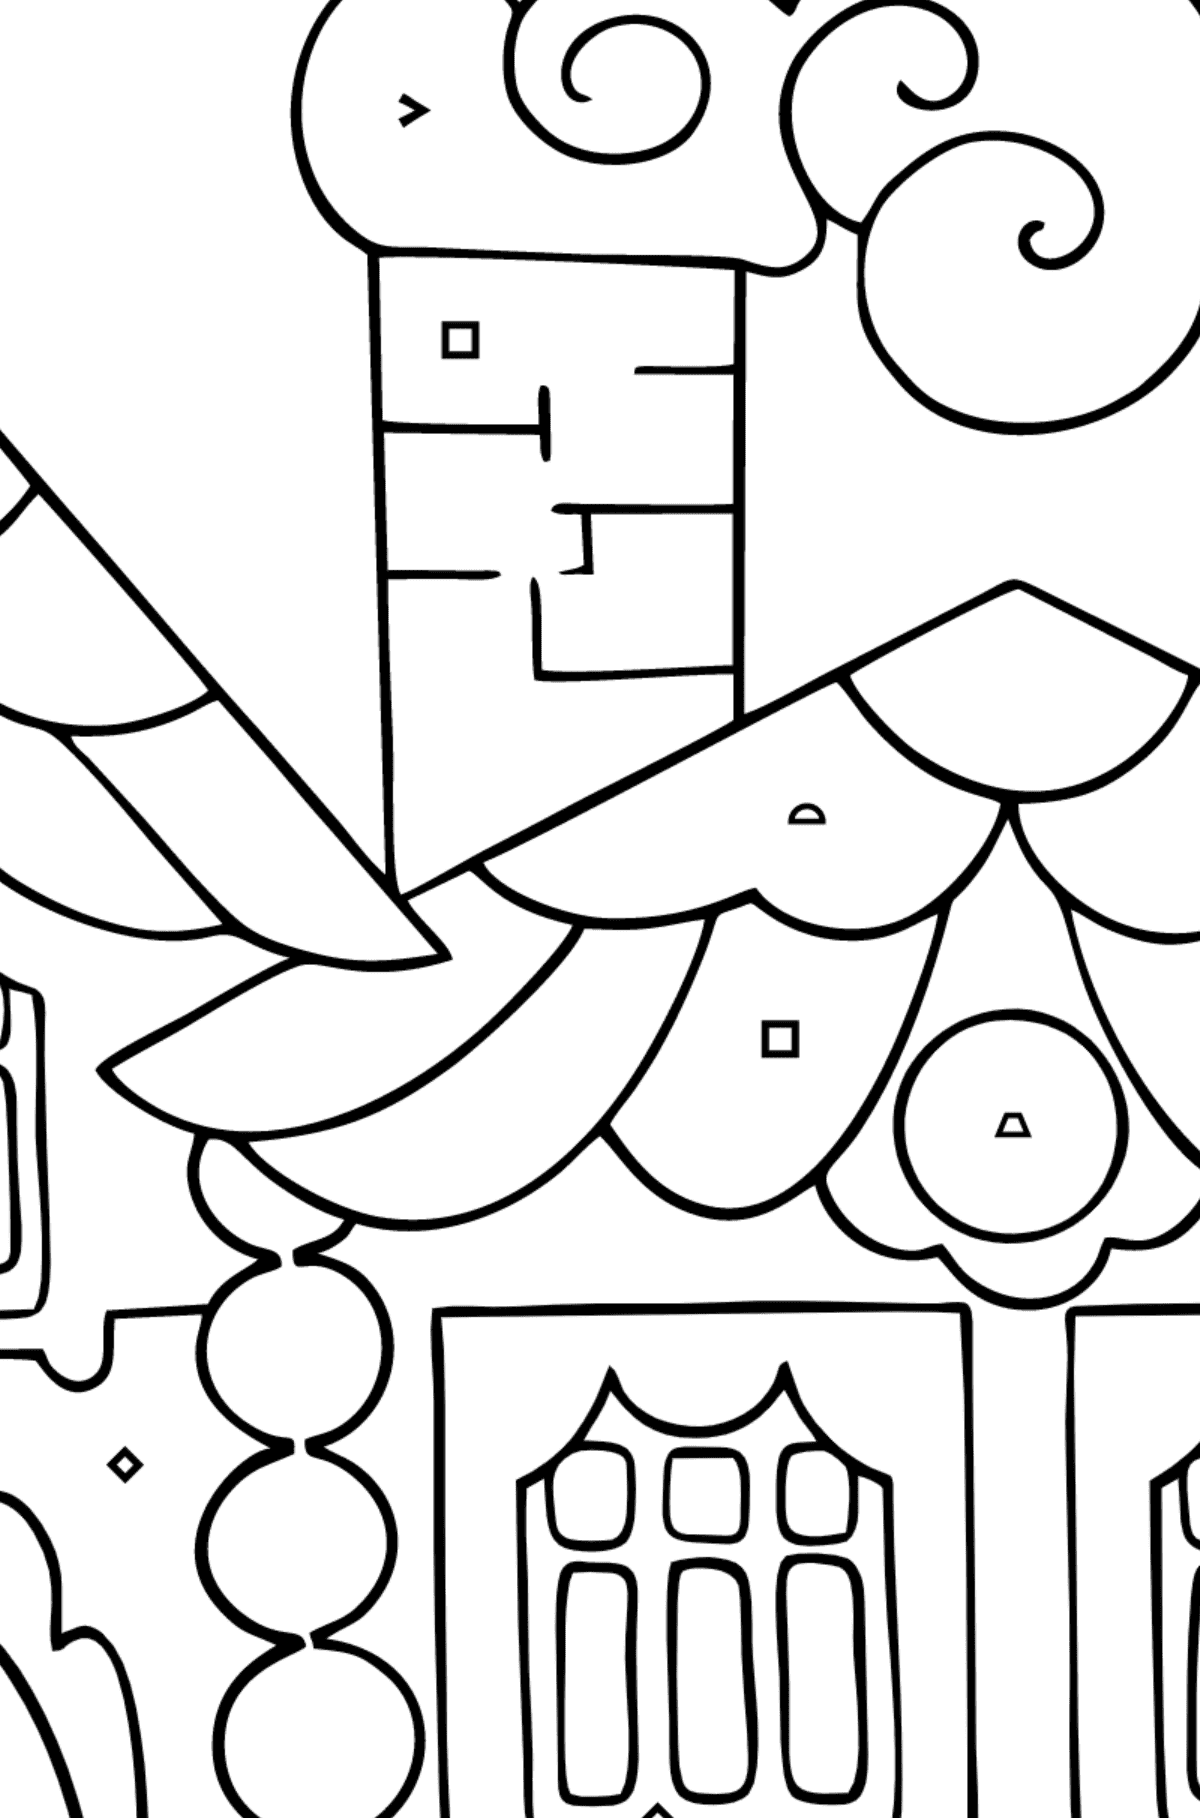 Simple Coloring Page - A House in the Forest - Coloring by Symbols and Geometric Shapes for Children